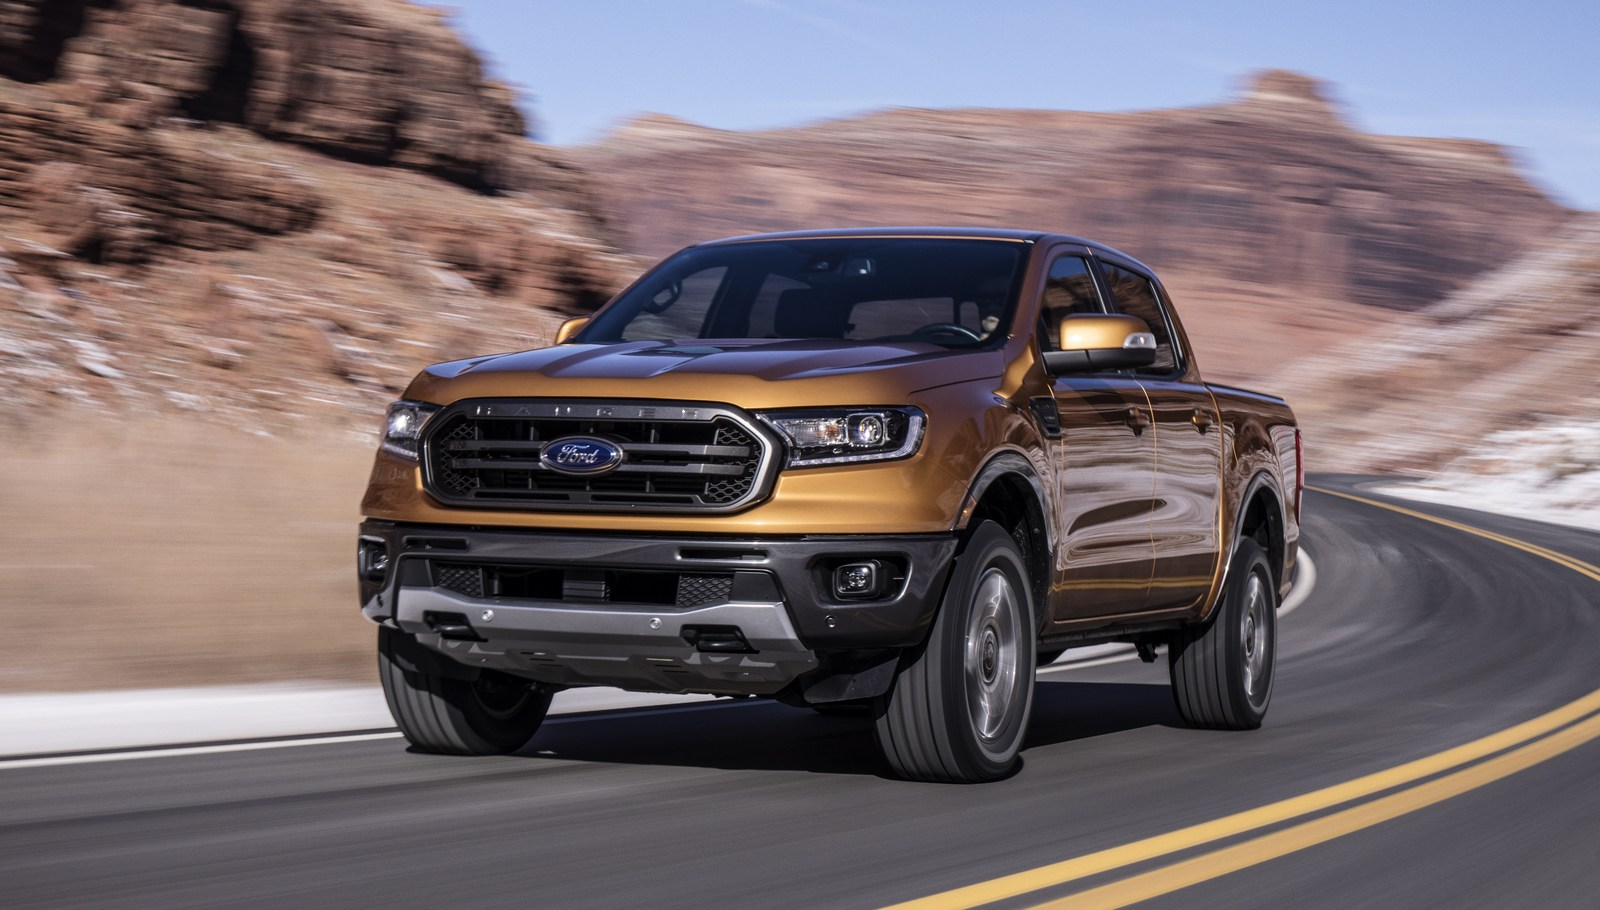 Ford Ranger pickup undergoes tough tests to get ready for the road